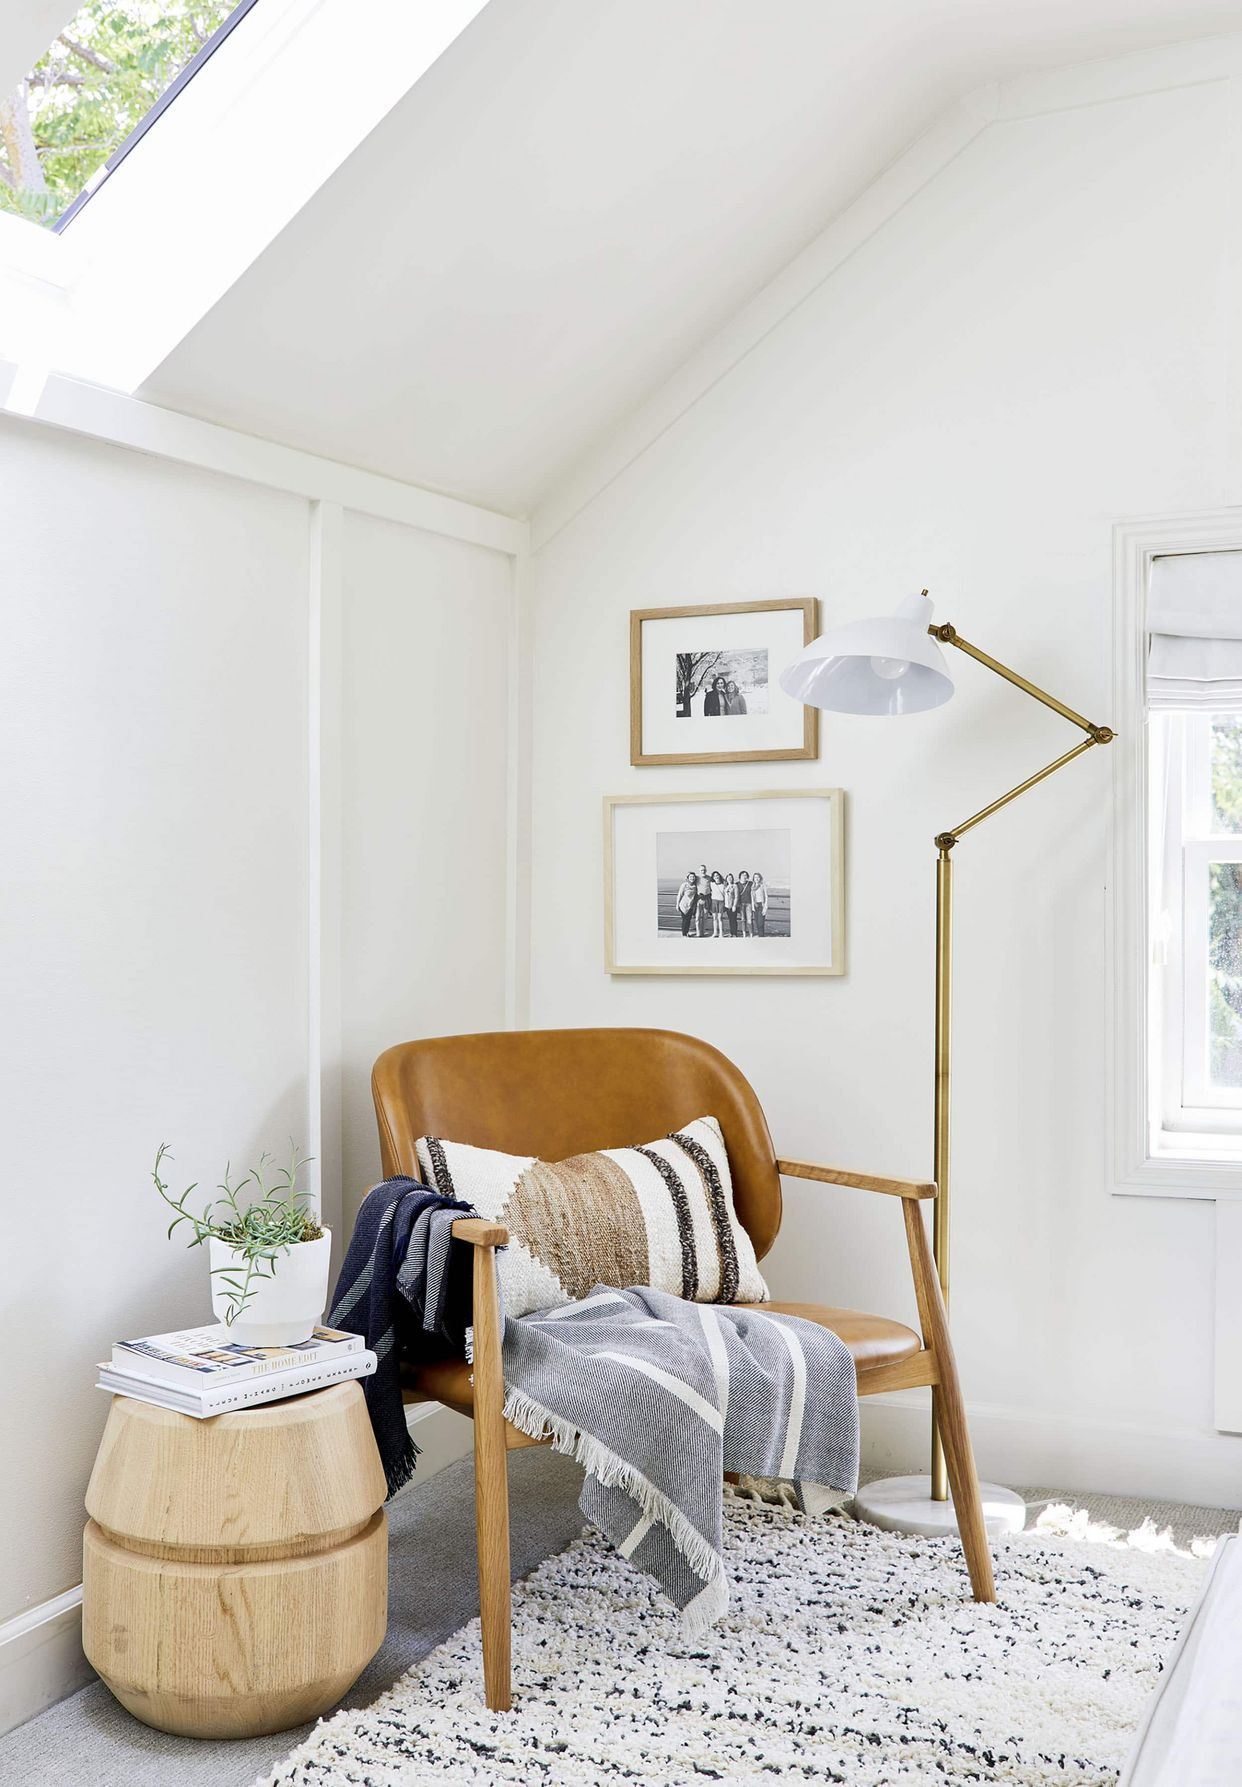 Reveal How We Brightened Up a Room (and Some Deserving